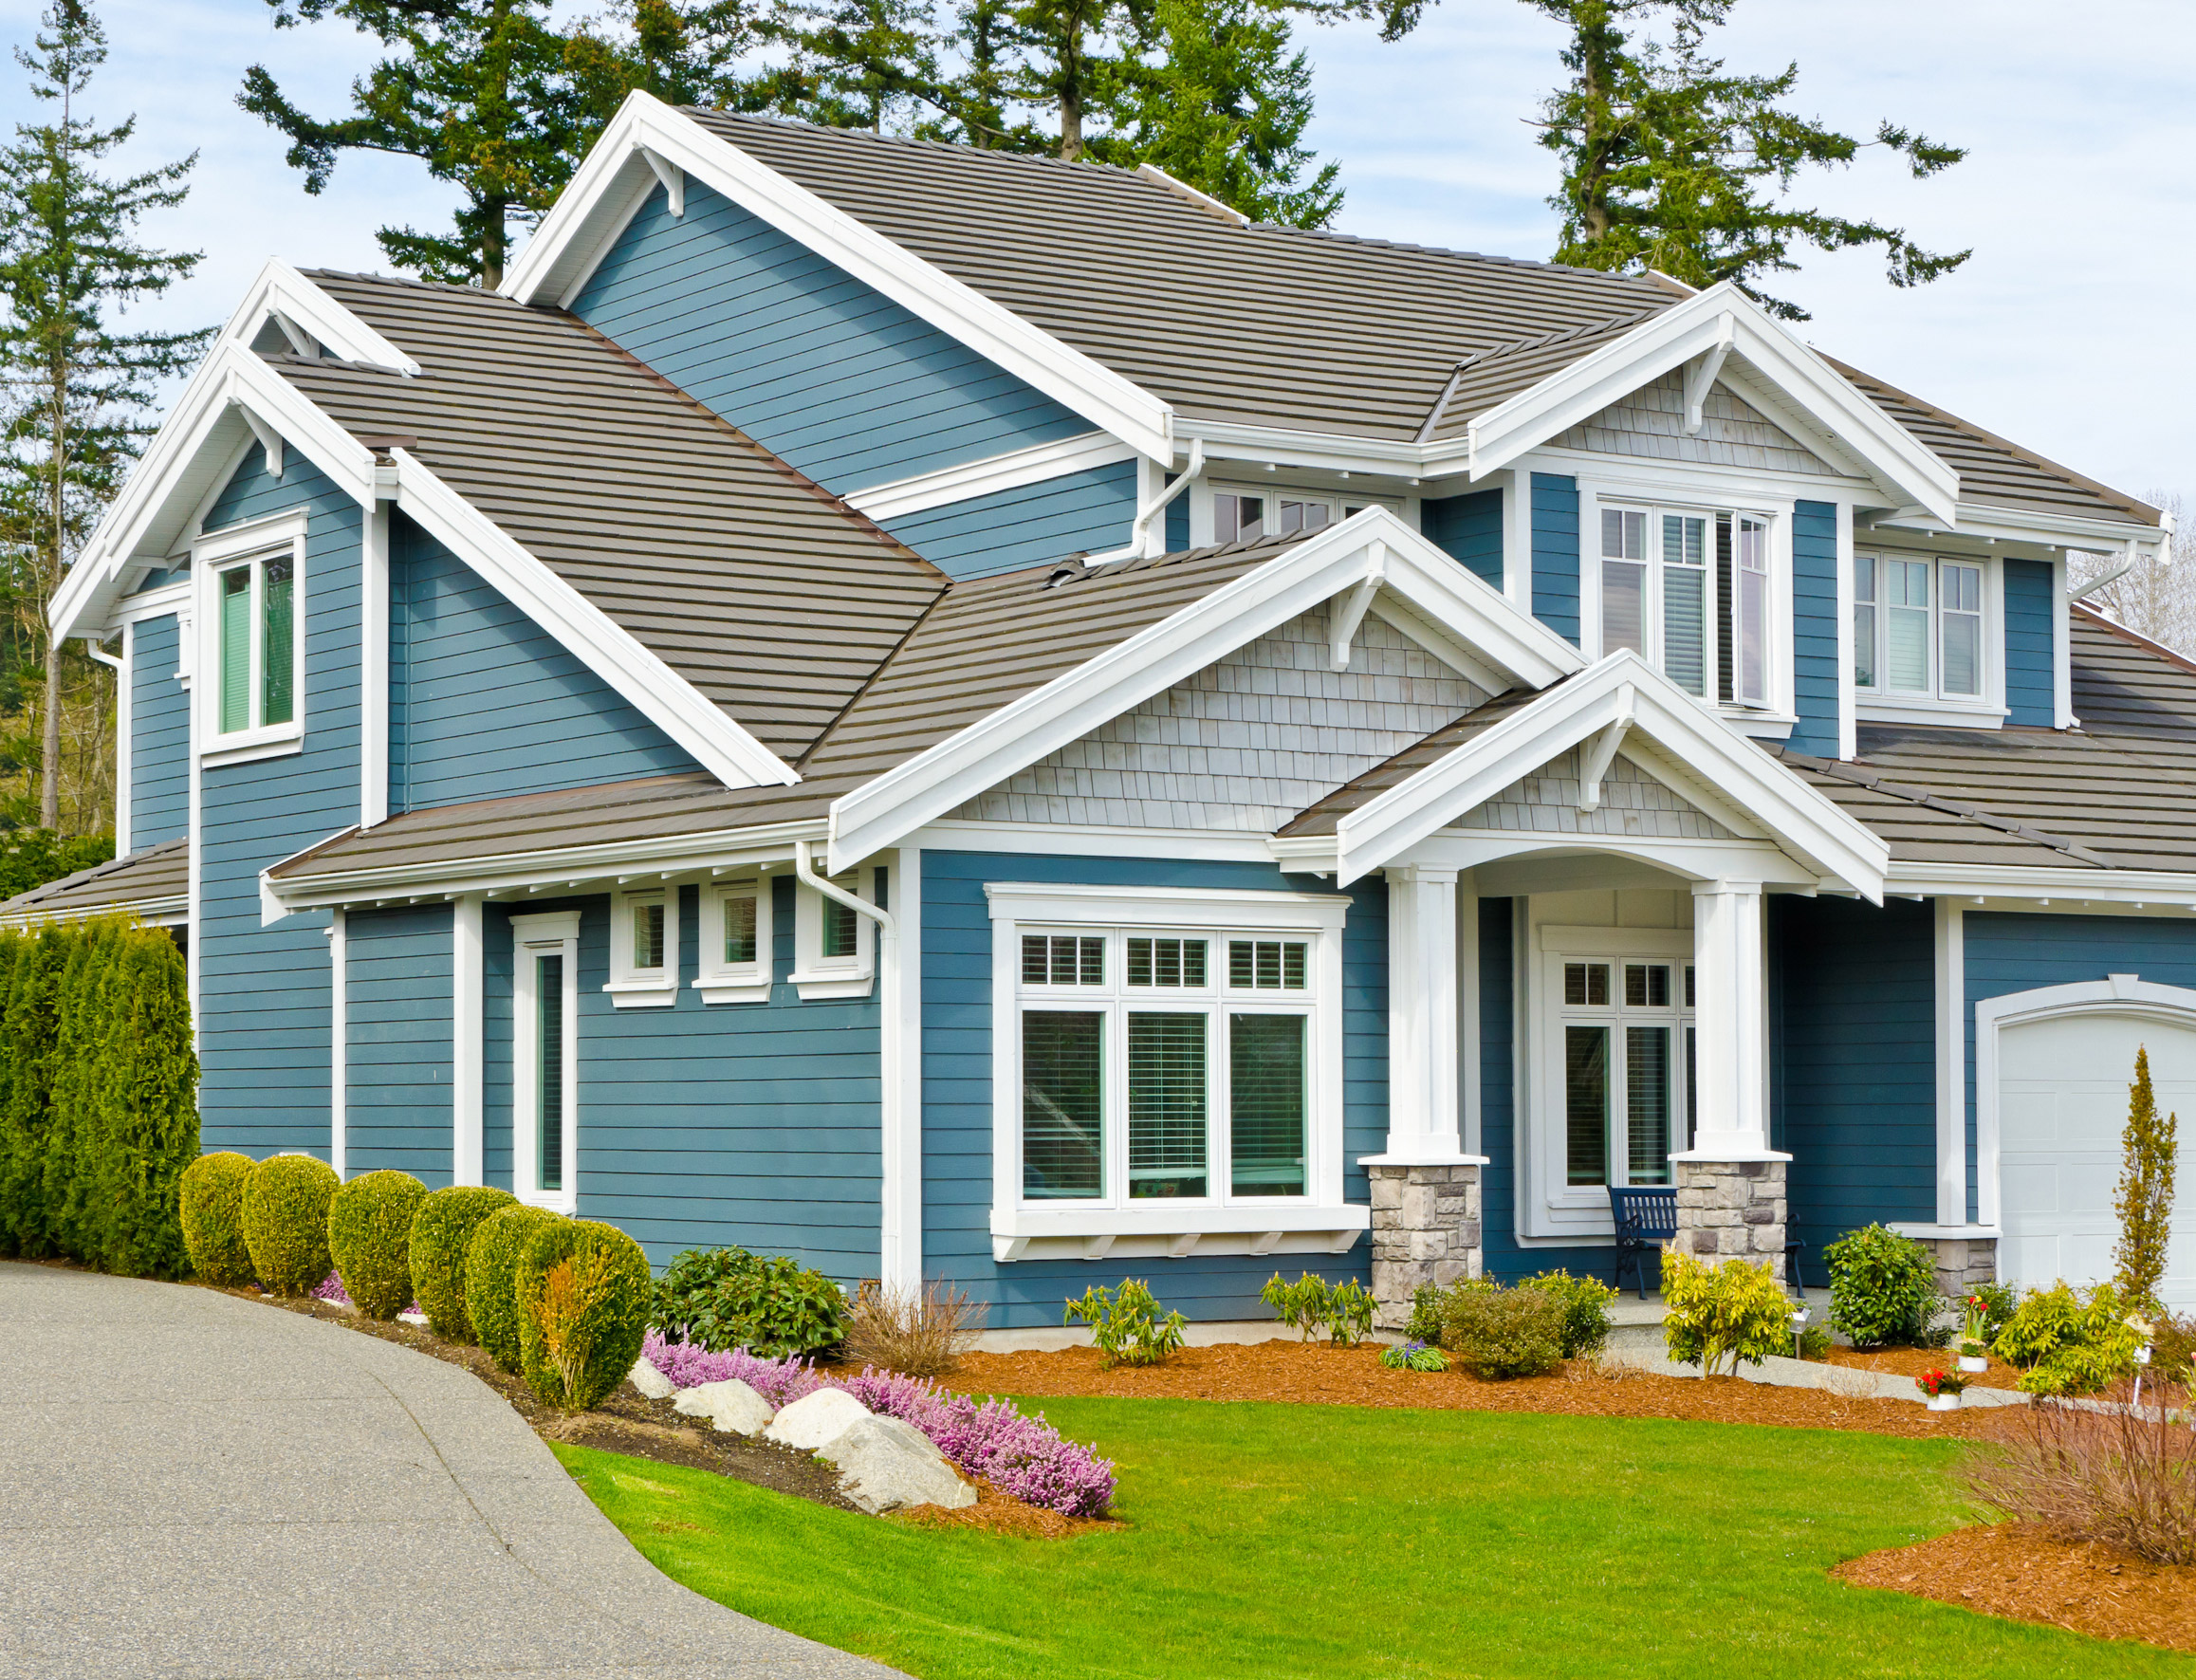 Welcome to Hometown | Hometown Exterior Designs - Portland, OR & Vancouver, WA